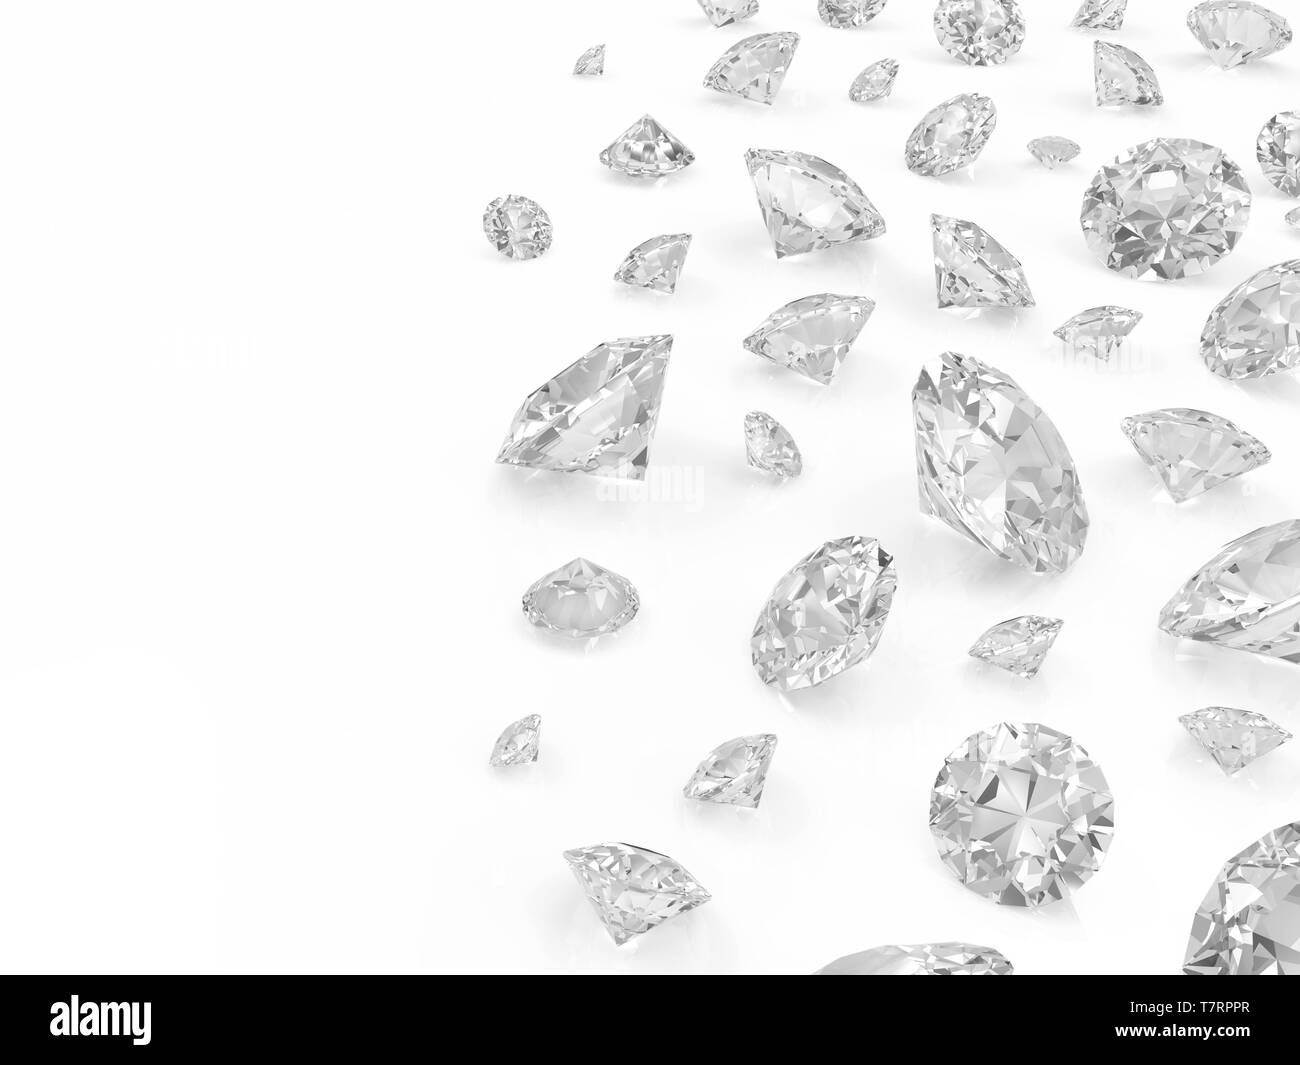 Diamonds isolated on white background with place for your text - Stock Image